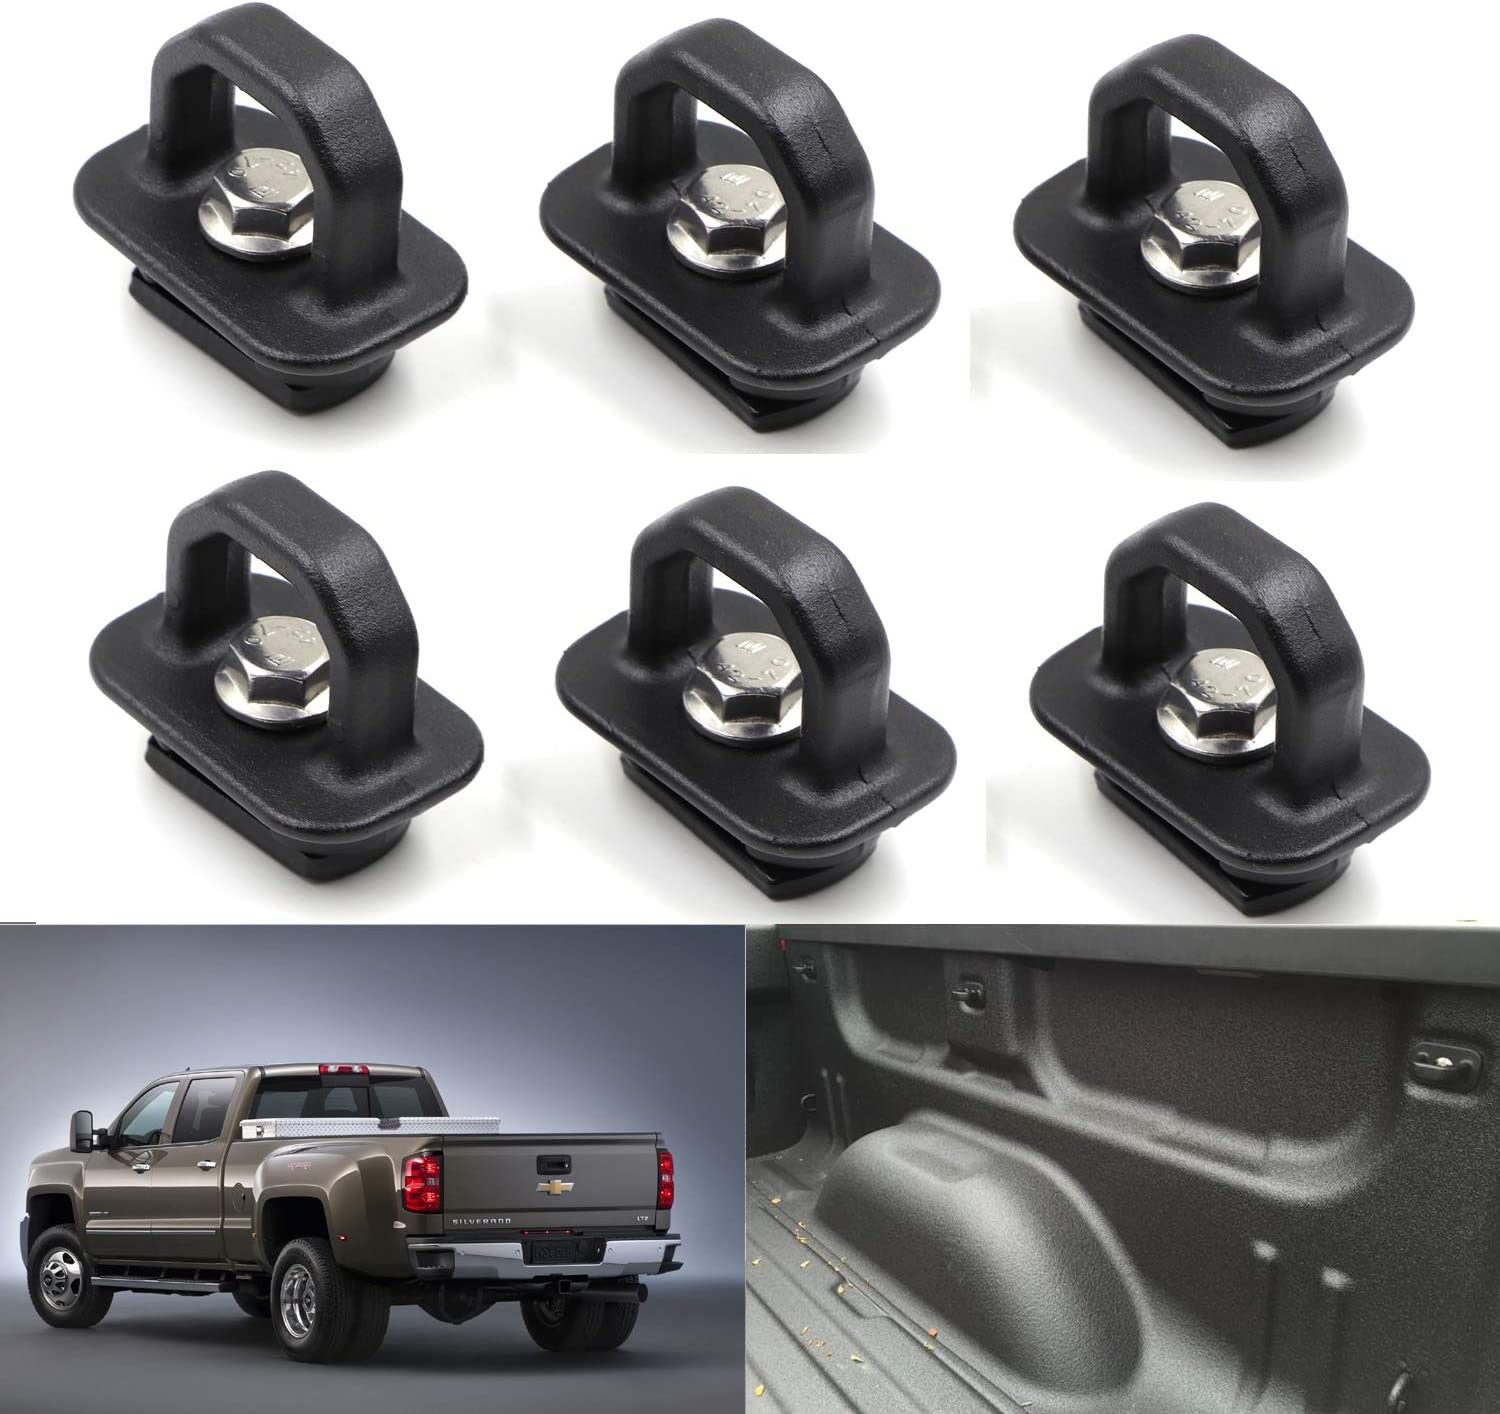 2015-2019 Colorado and Canyon Henkeyi 4 Pcs Truck Bed Side Wall Tie Down Anchors for 2007-2019 Silverado and Sierra